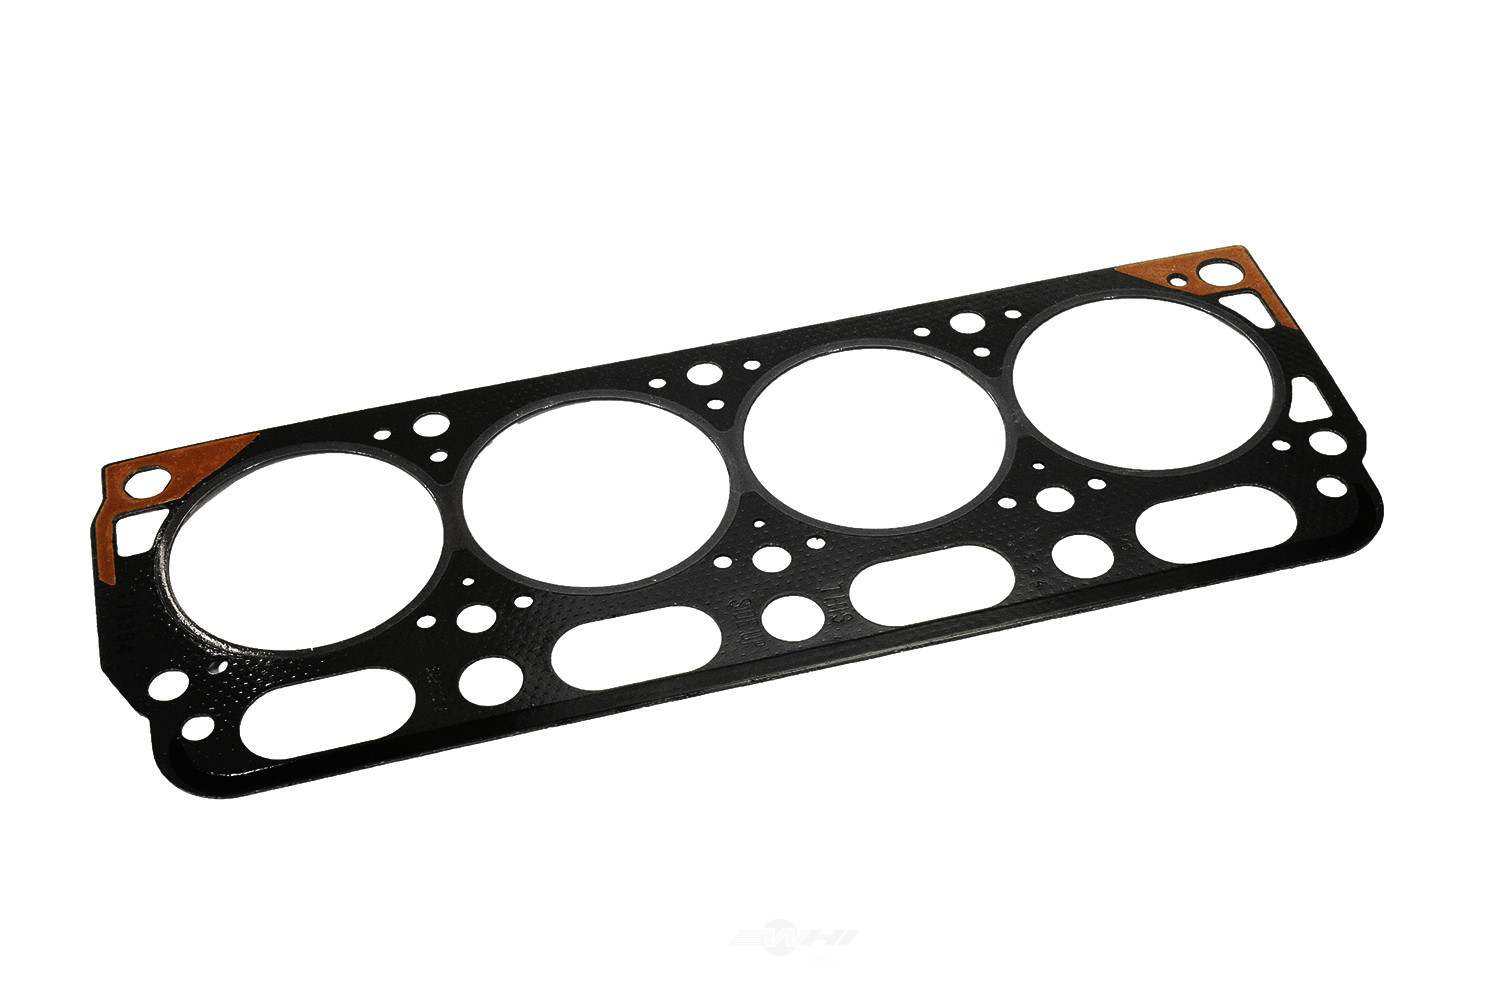 ACDELCO GM ORIGINAL EQUIPMENT - Engine Cylinder Head Gasket - DCB 24577218